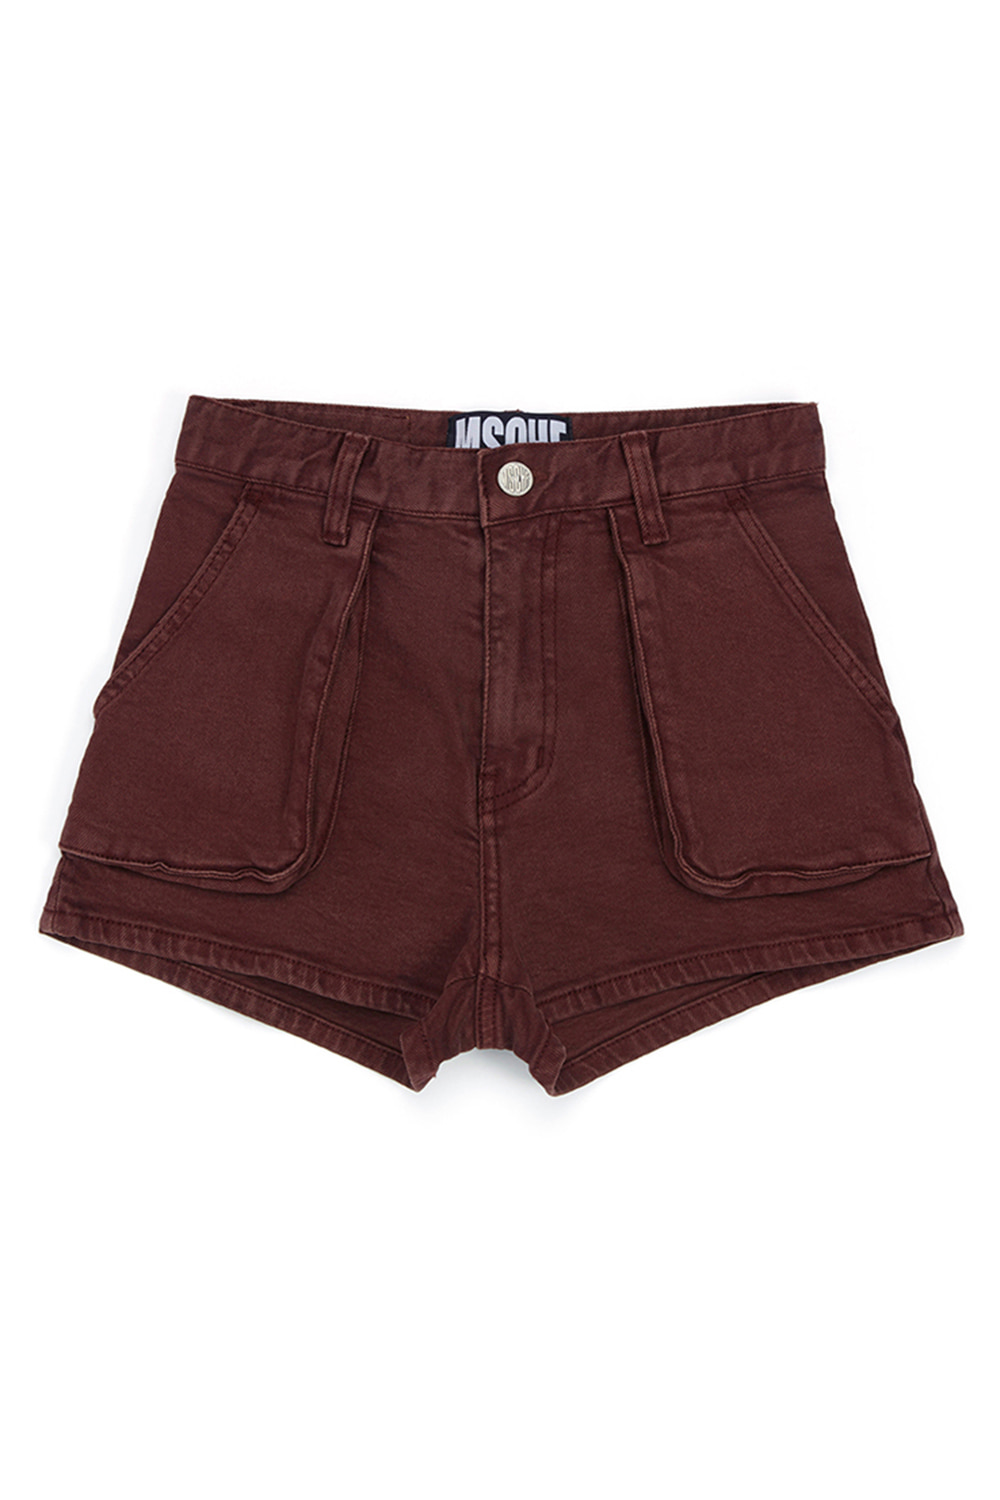 CARGO SHORTS_brown